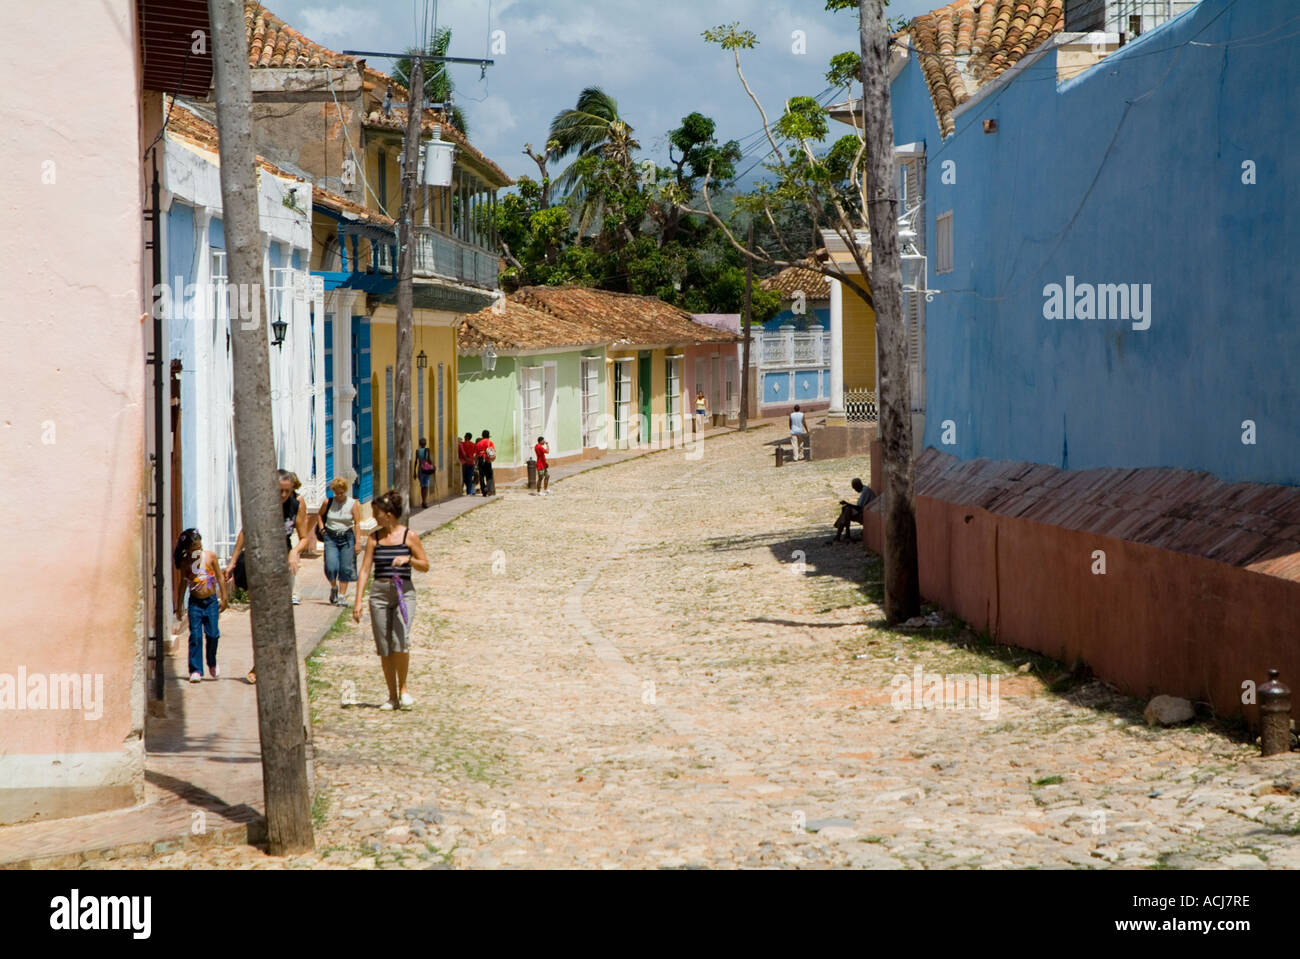 Couple walking past windows with metal grills on a cobbled street, Trinidad, Cuba. - Stock Image